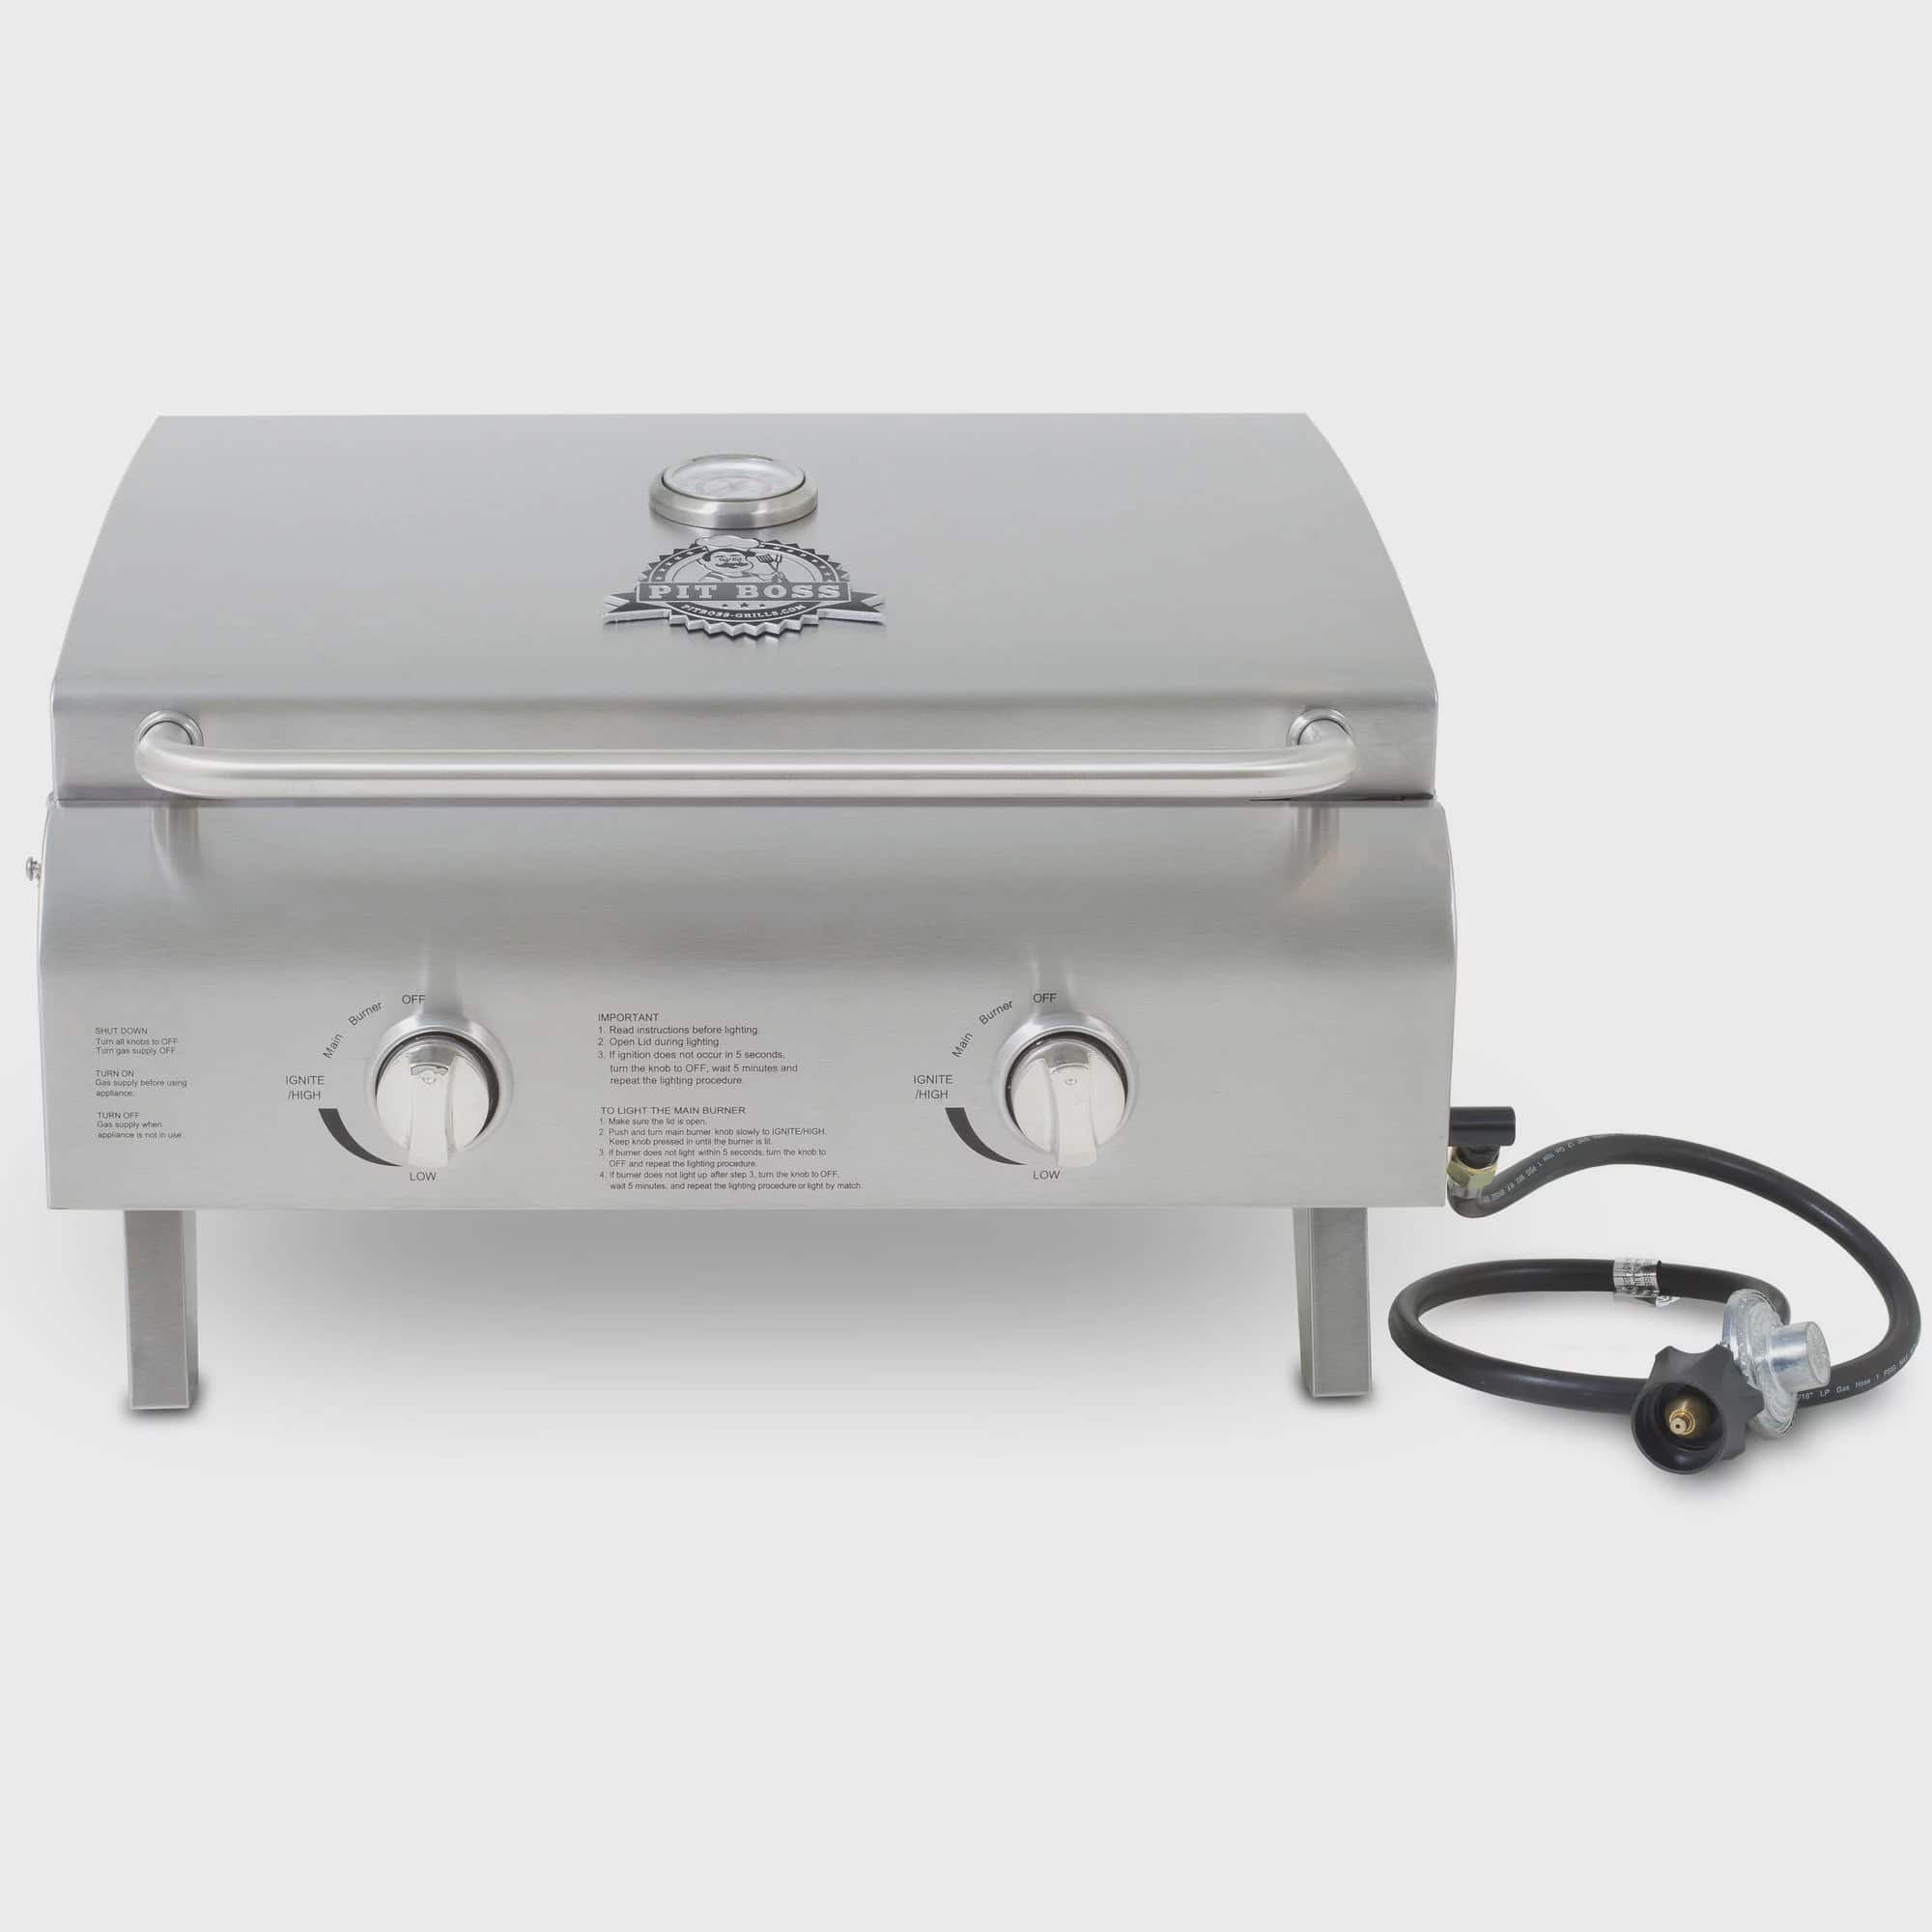 Pitt Boss Grills 2-burner portable gas grill